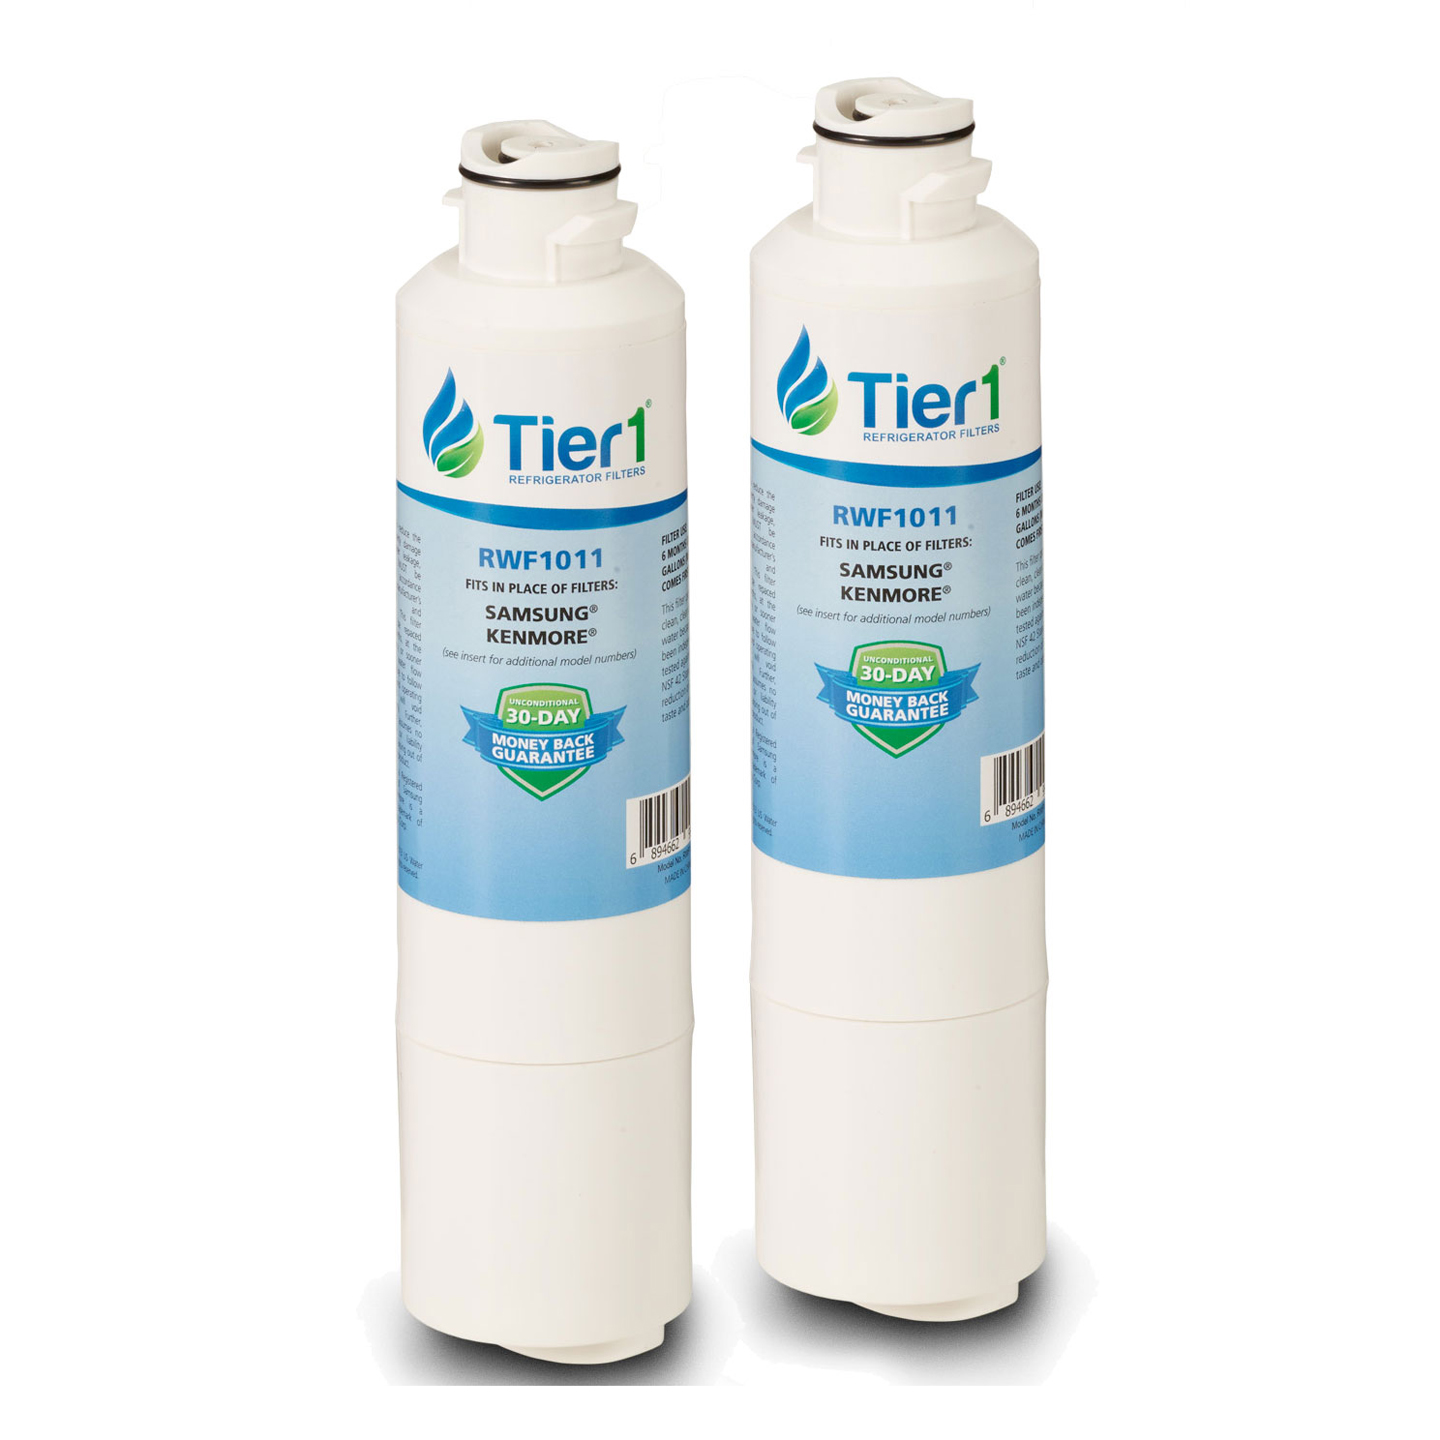 DA29-00020B Samsung Comparable Refrigerator Water Filter Replacement By Tier1 (2 Pack) TIER1_RWF1011_2_PACK